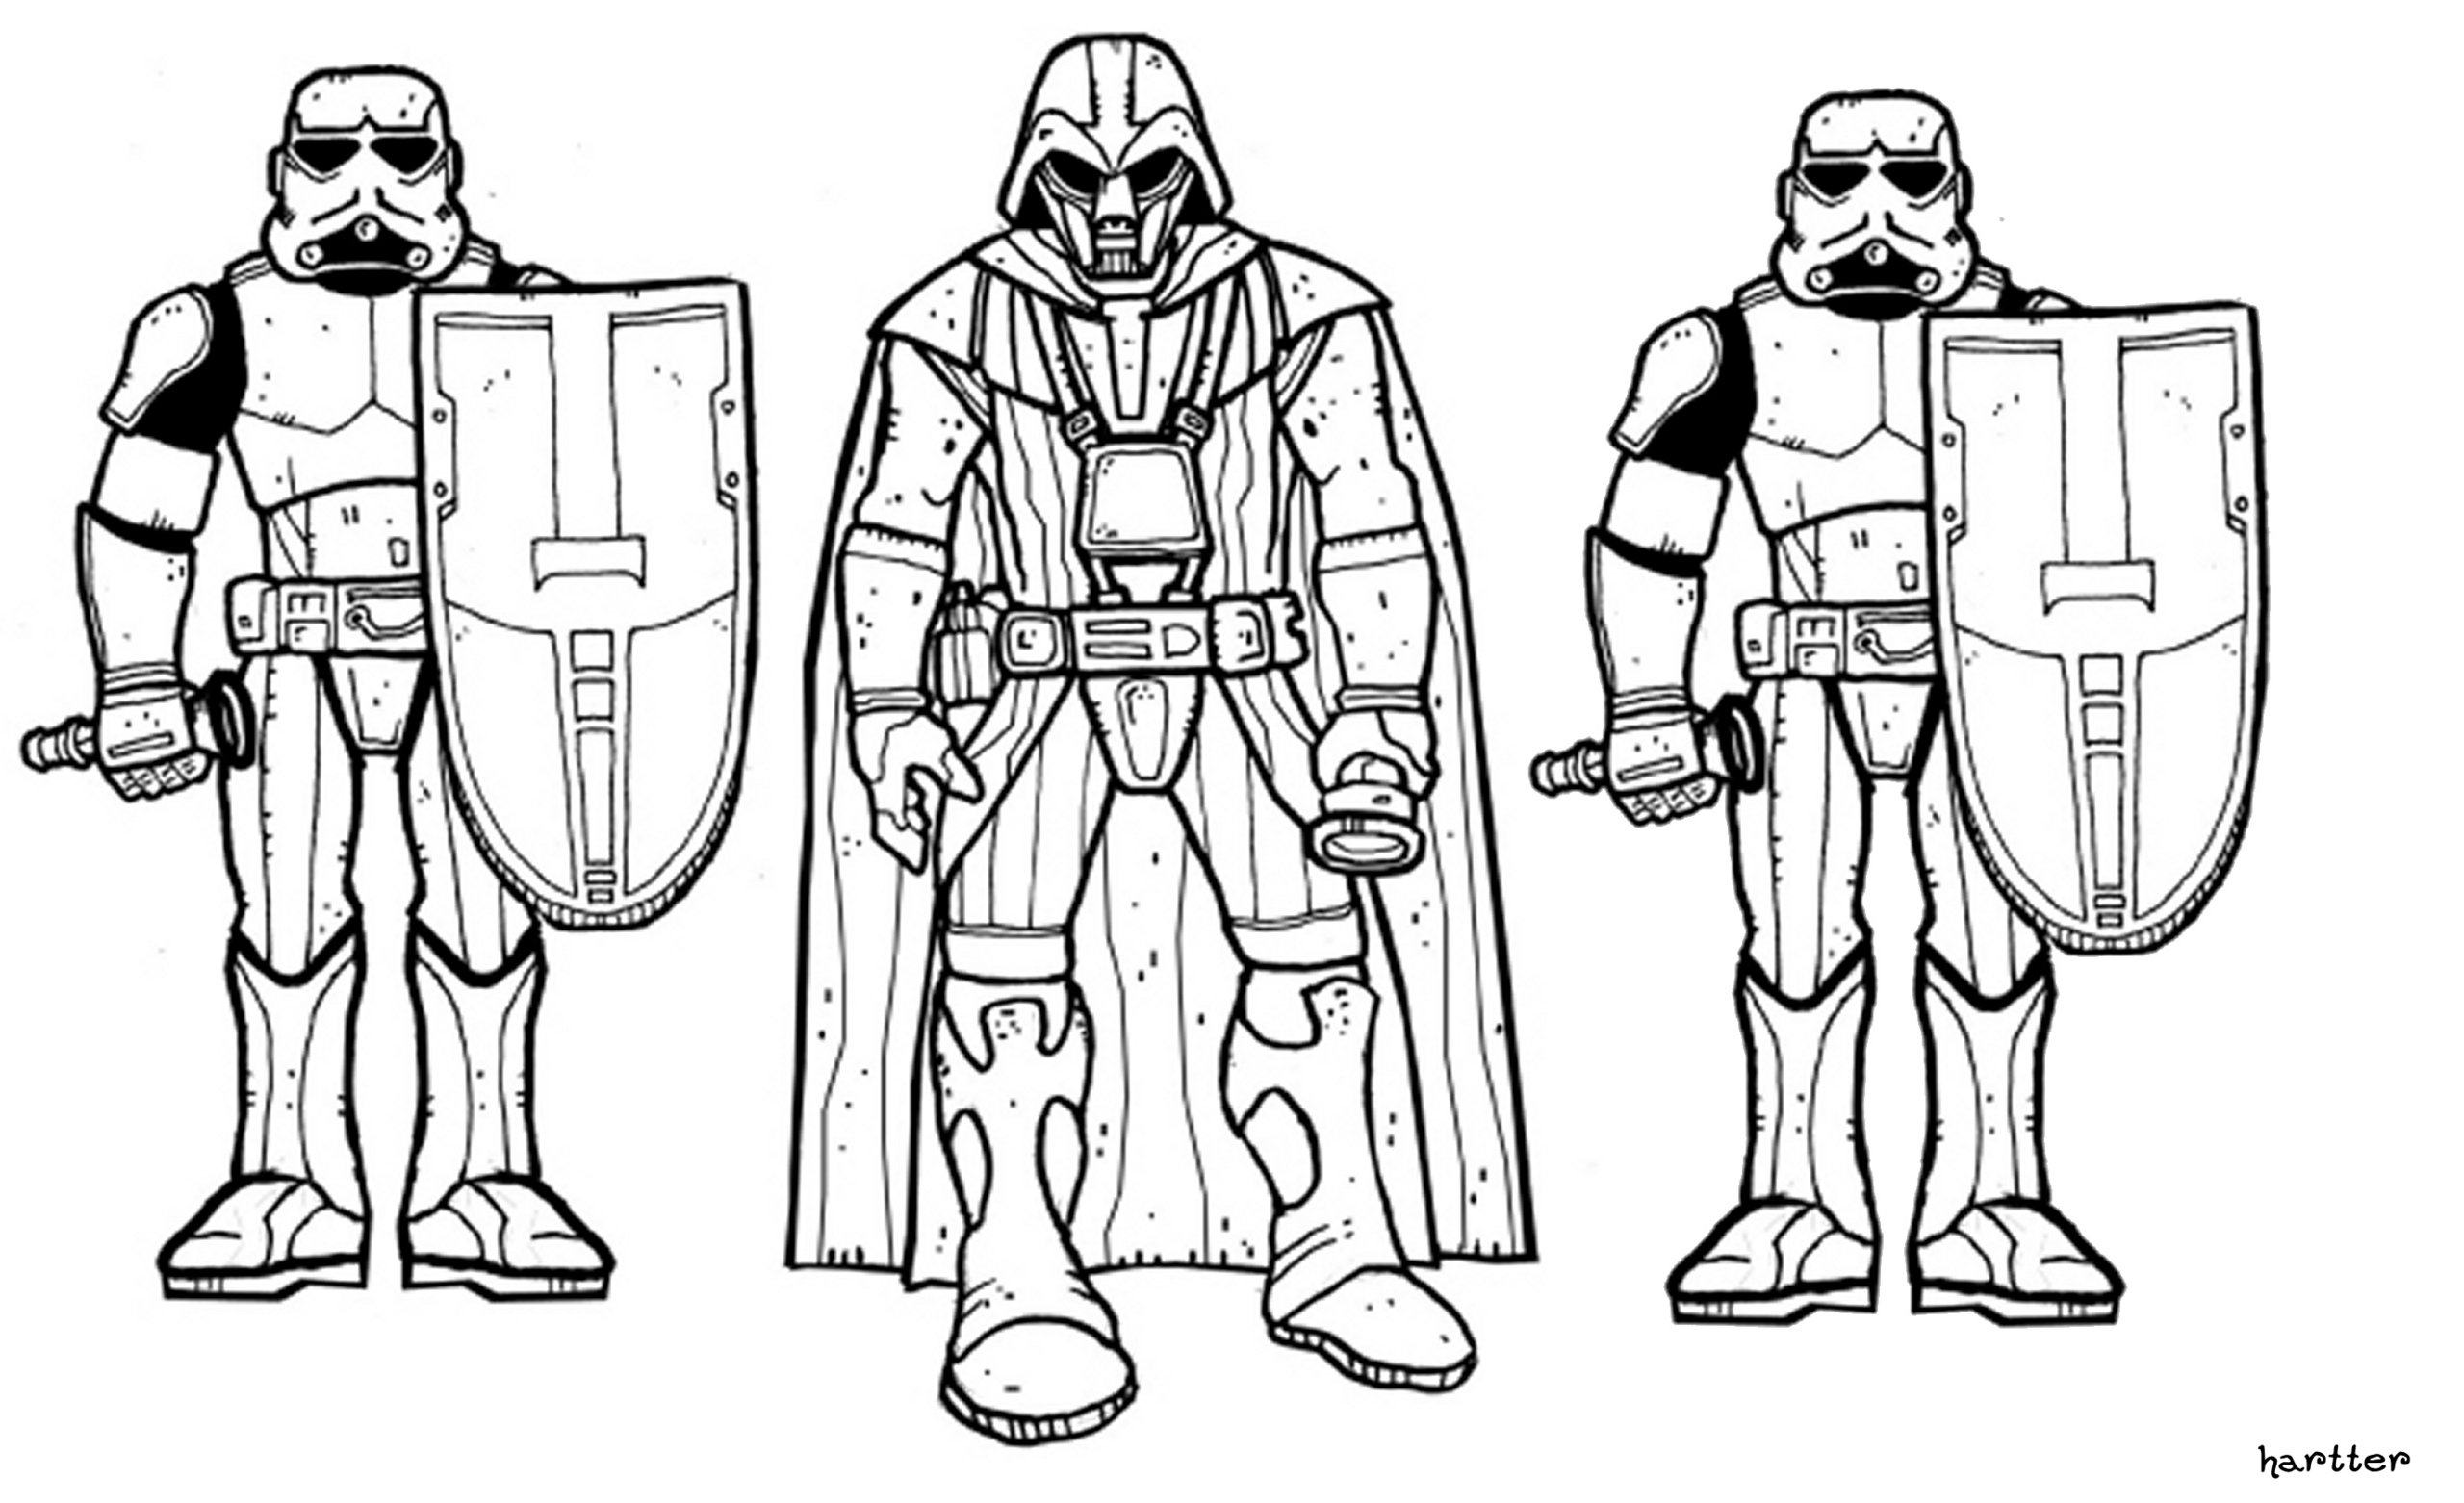 Star Wars Characters Coloring Pages Gallery Of Polkadots On Parade Star Wars the force Awakens Coloring Pages Collection